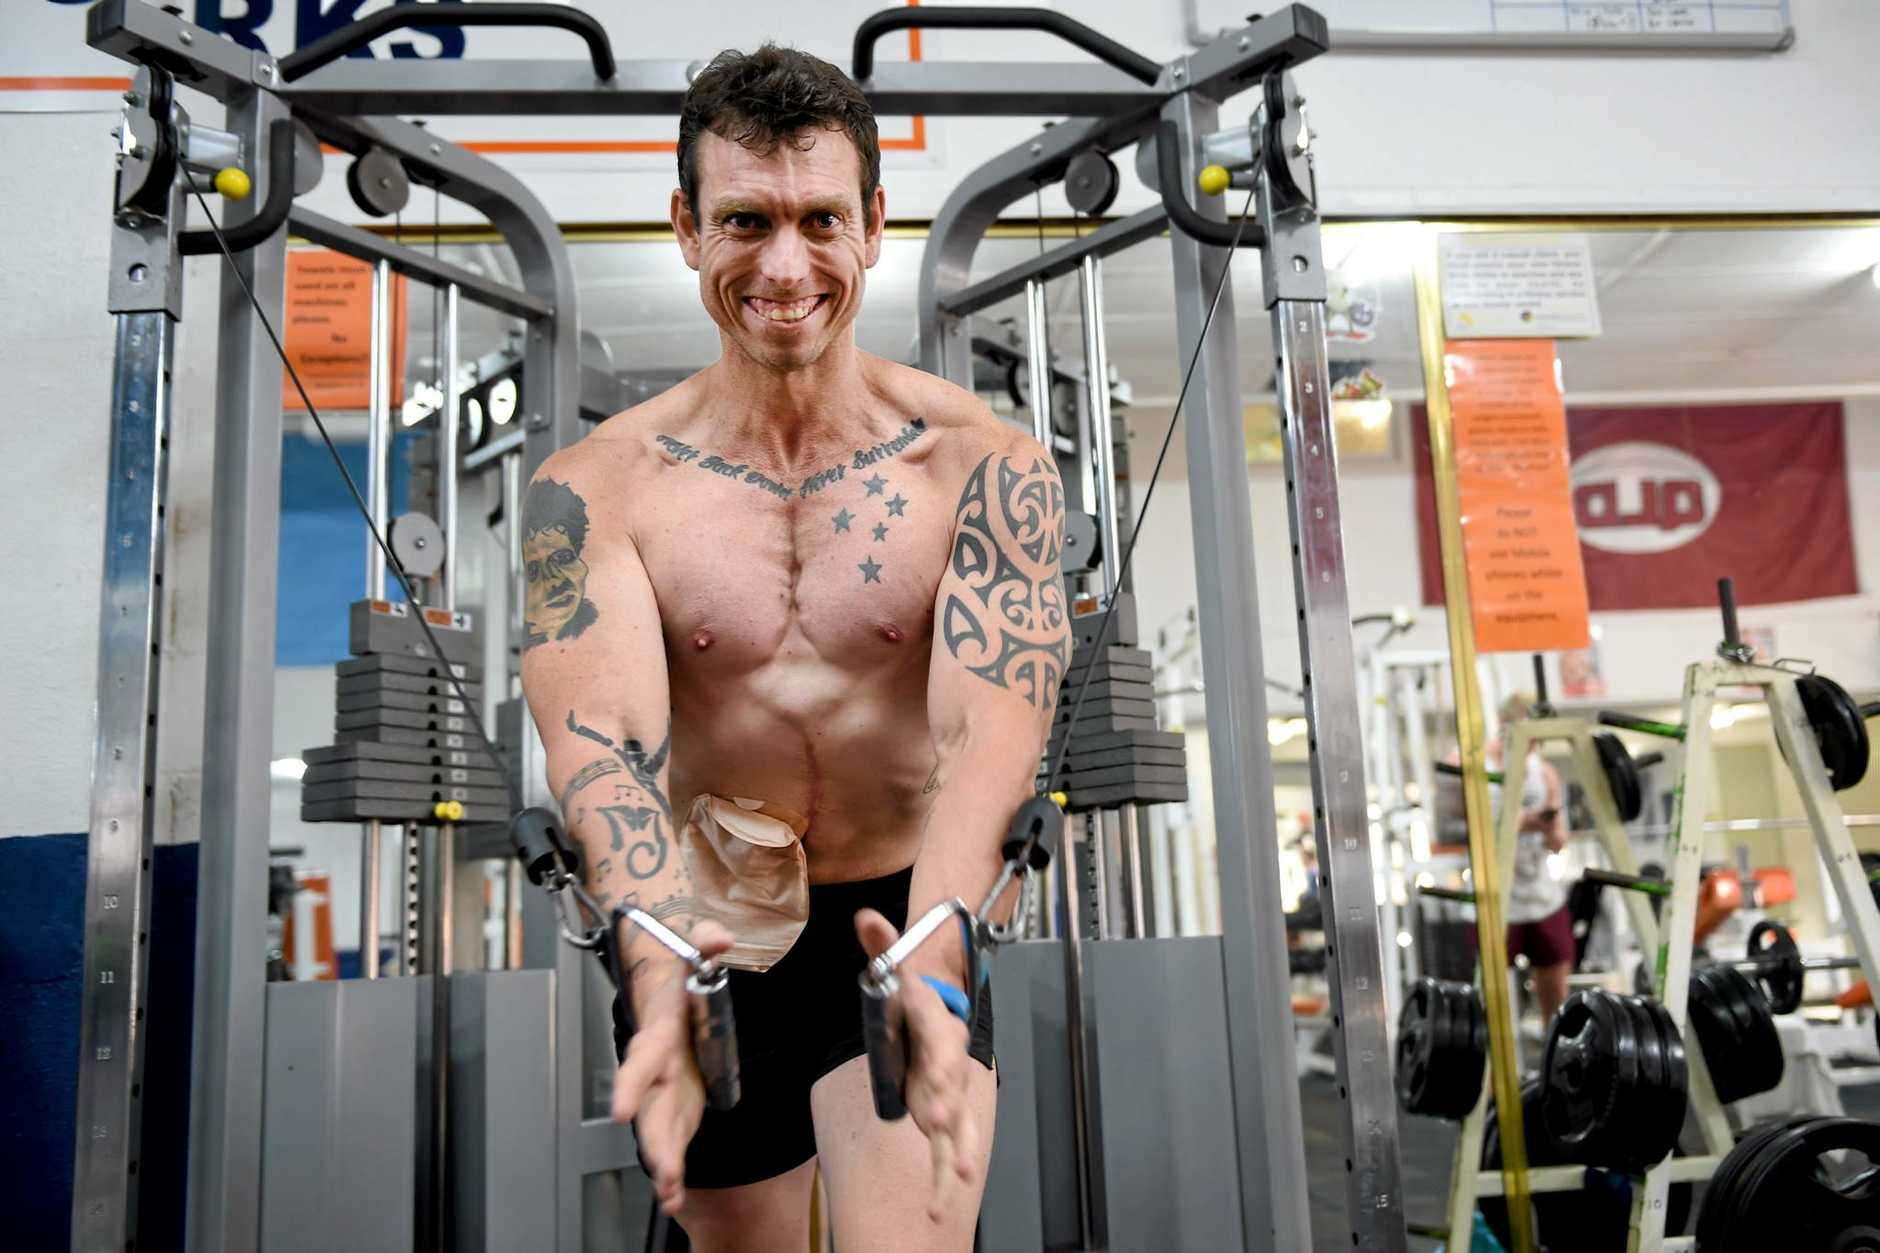 Beating the odds with a point to prove - Maryborough Fitness Health and Bodyworks' Joel Seeney picked up a second place at the national Max muscle up challenge - Seeney has become his own warrior, to battle stage three bowel cancer. Photo: Valerie Horton / Fraser Coast Chronicle